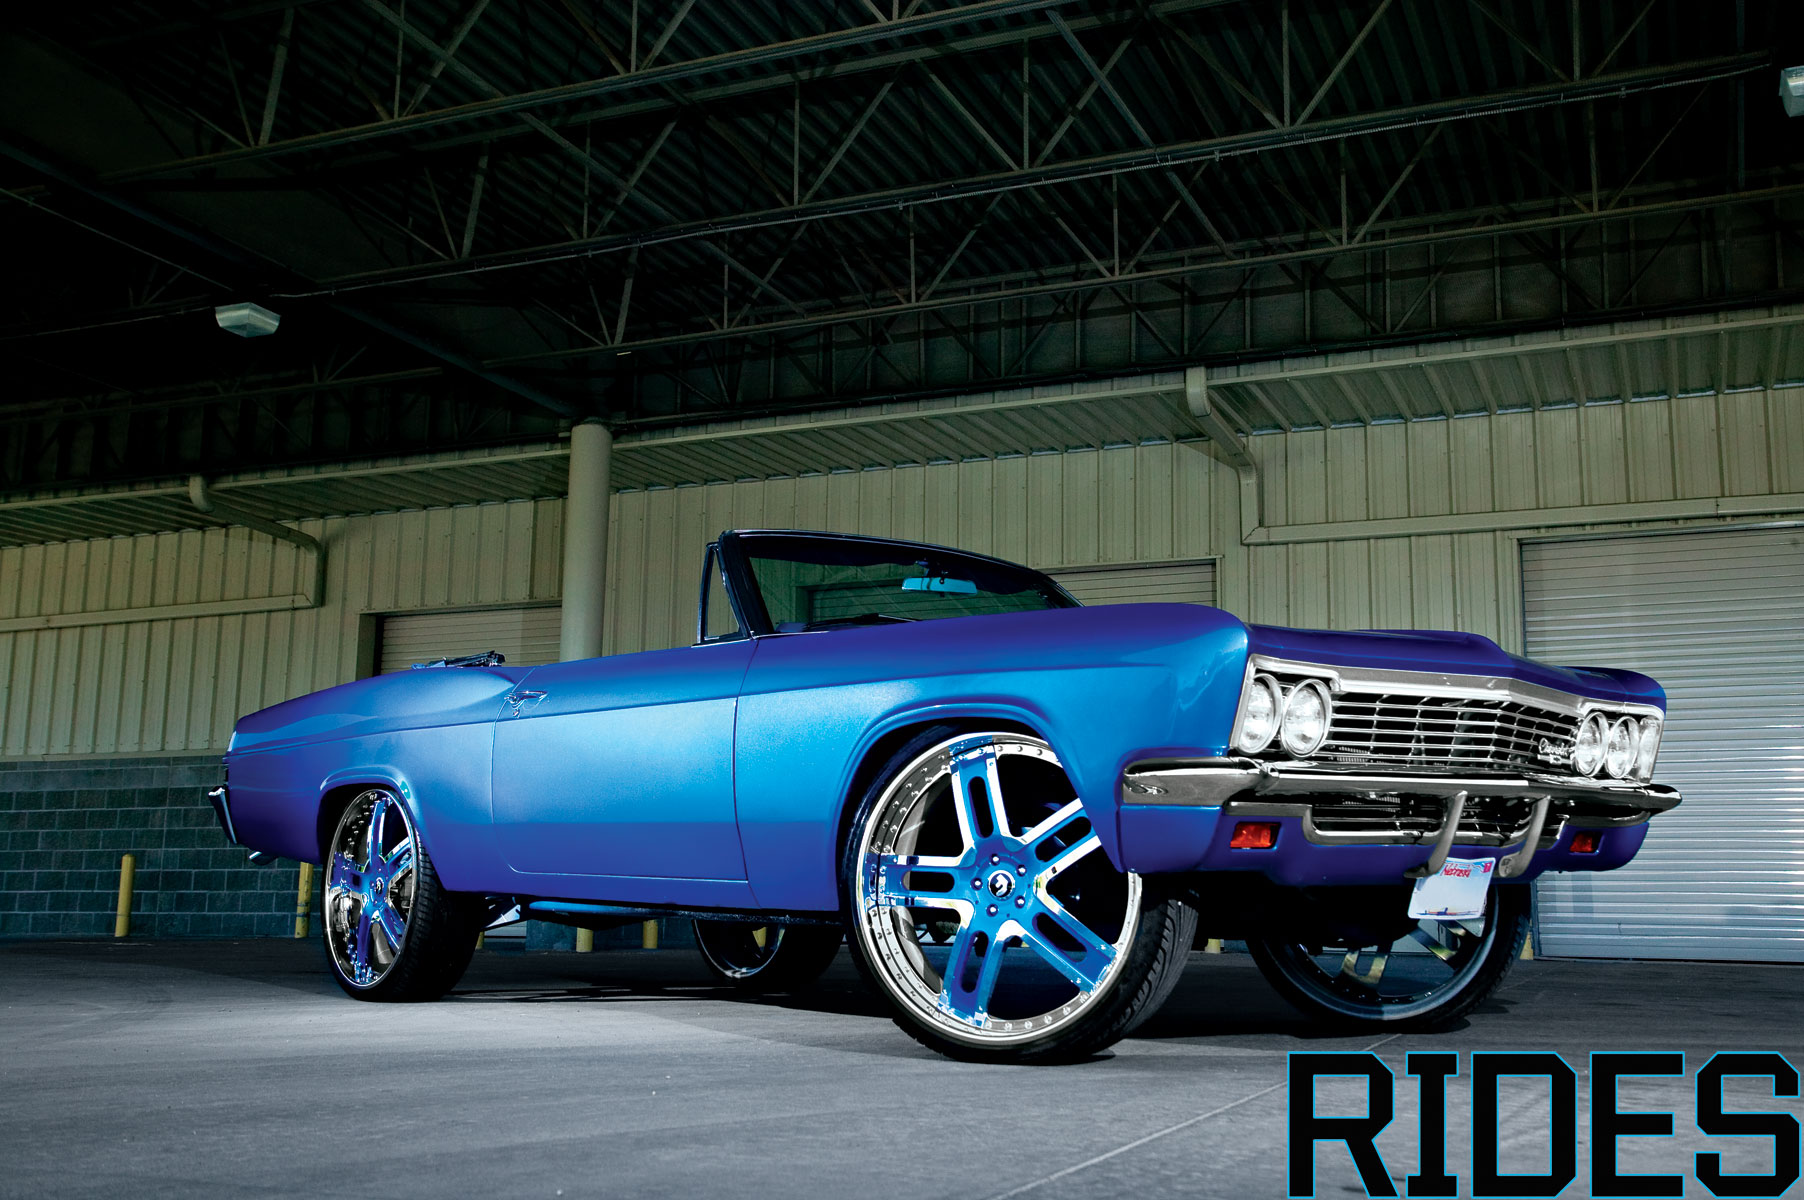 Car Rims And Tires Wallpaper 1966 Chevy Impala Rides Magazine